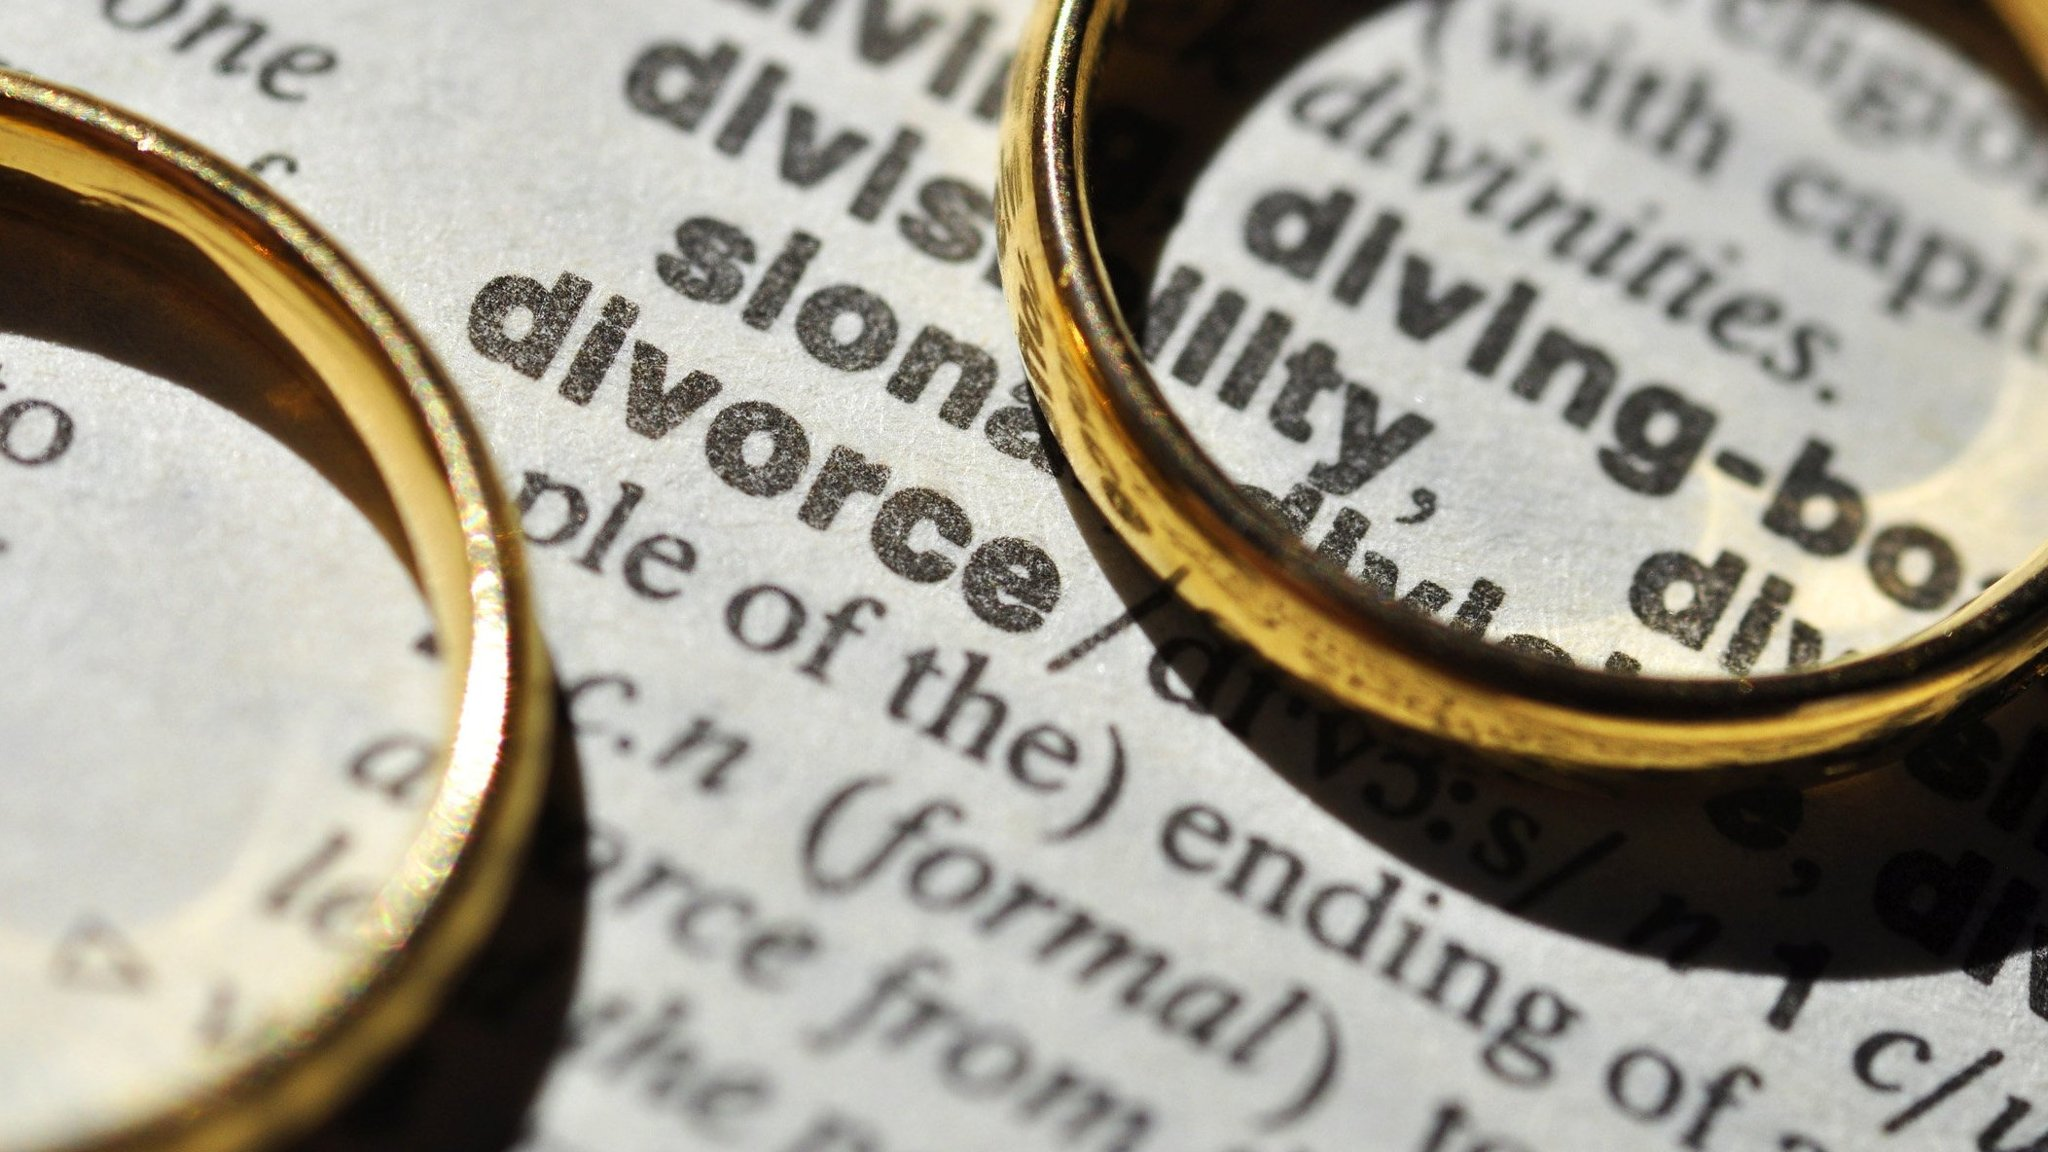 Virginia legal separation and dating